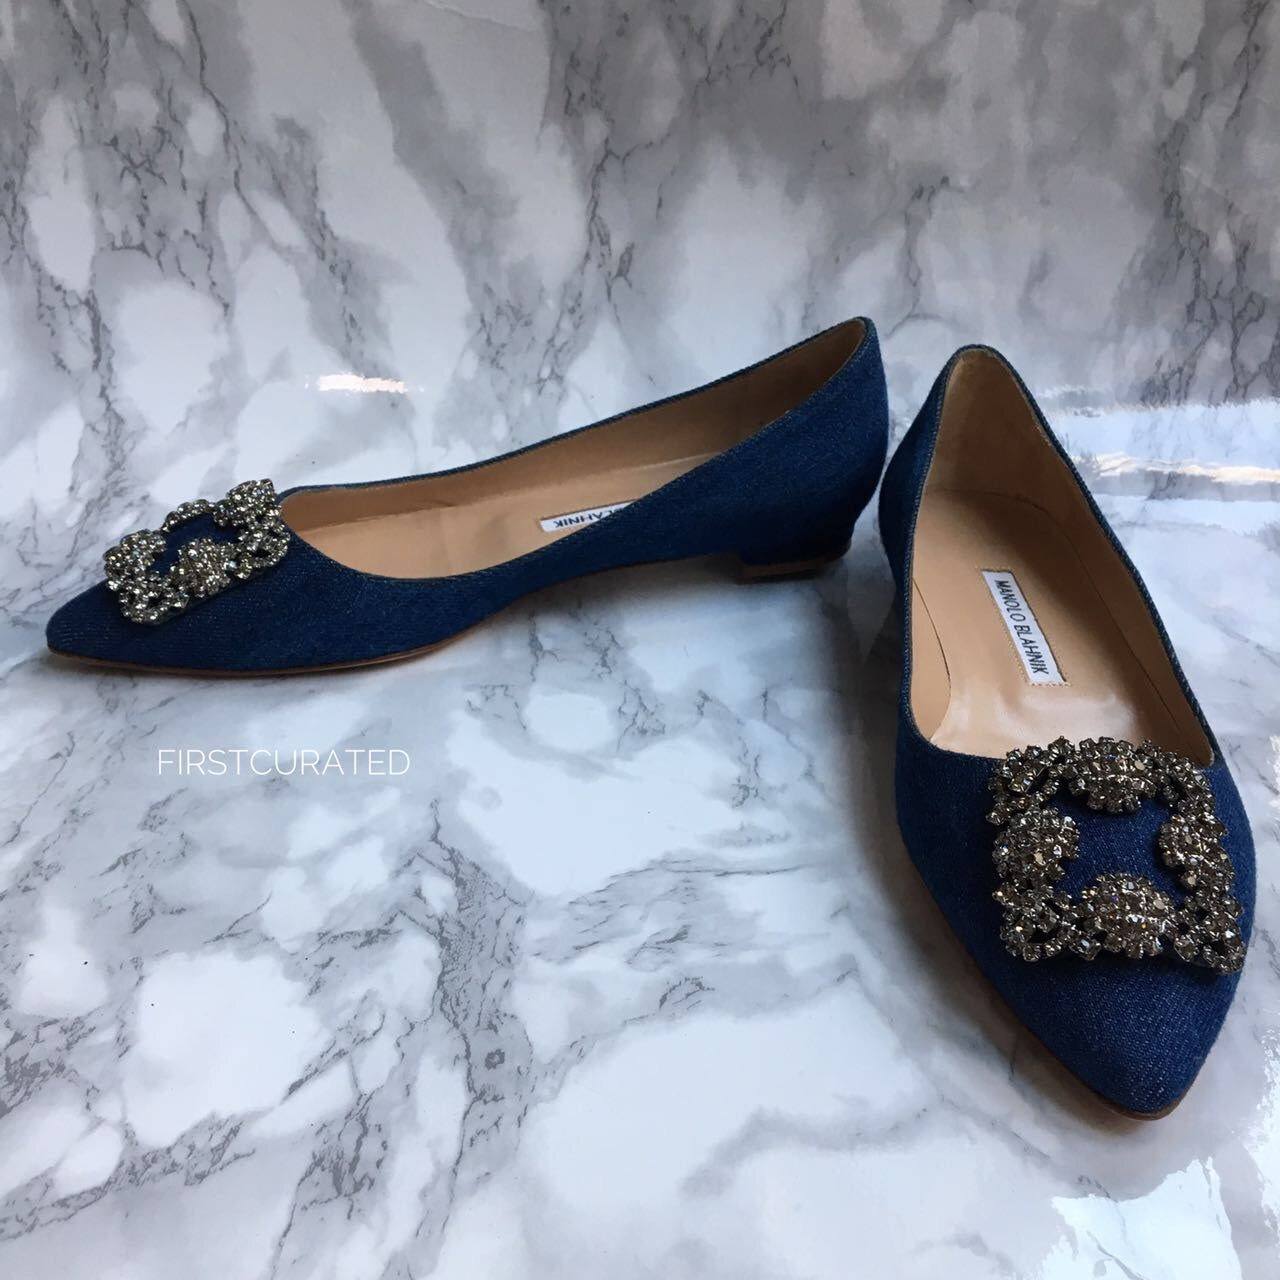 a64f8815bc65 ... sale manolo blahnik hangisi blue jean flats size 38.5 91036 df5a6